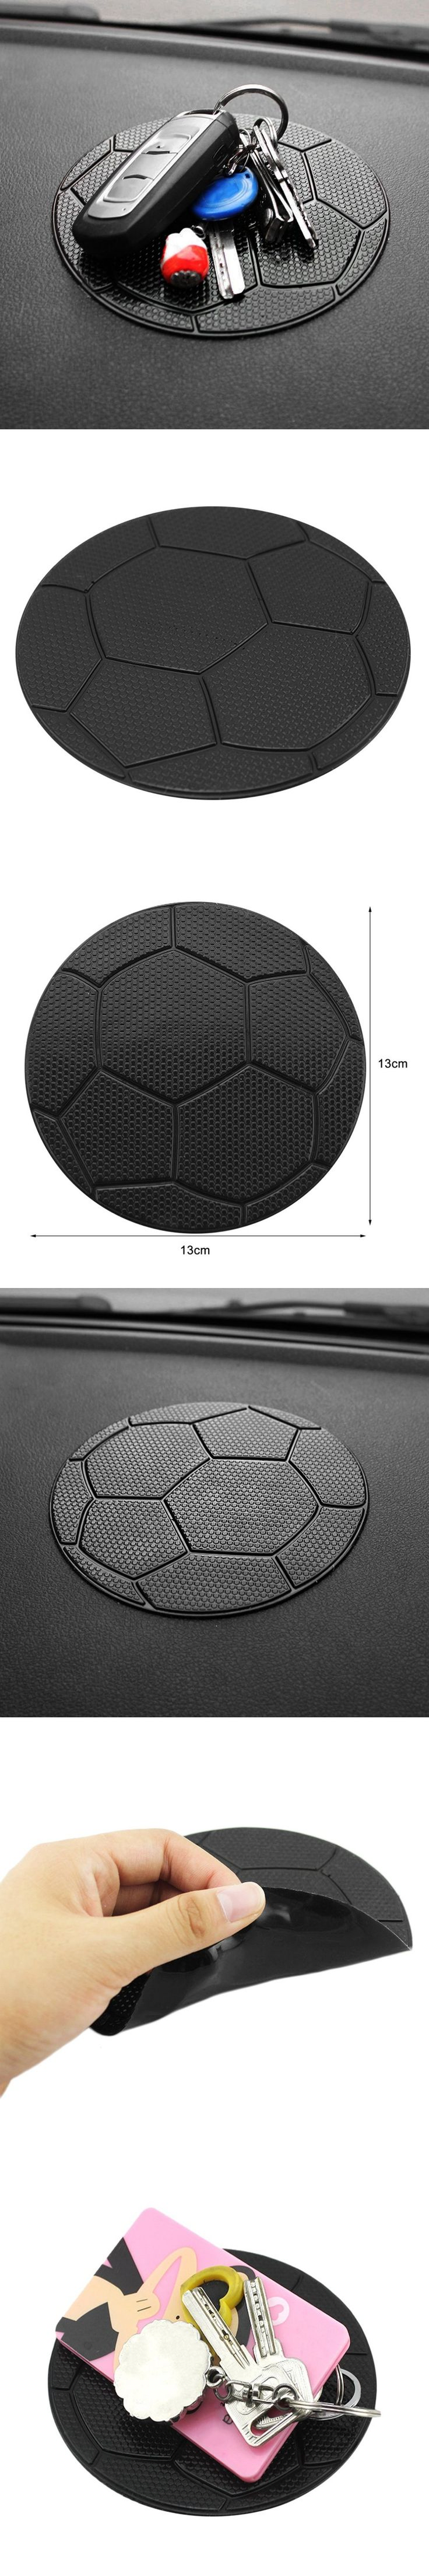 Newest Silicone Anti Slip Football Pattern Car Styling Sticky Pad Cushion for Cell Phone Coins Key Chain Sunglasses Car-styling